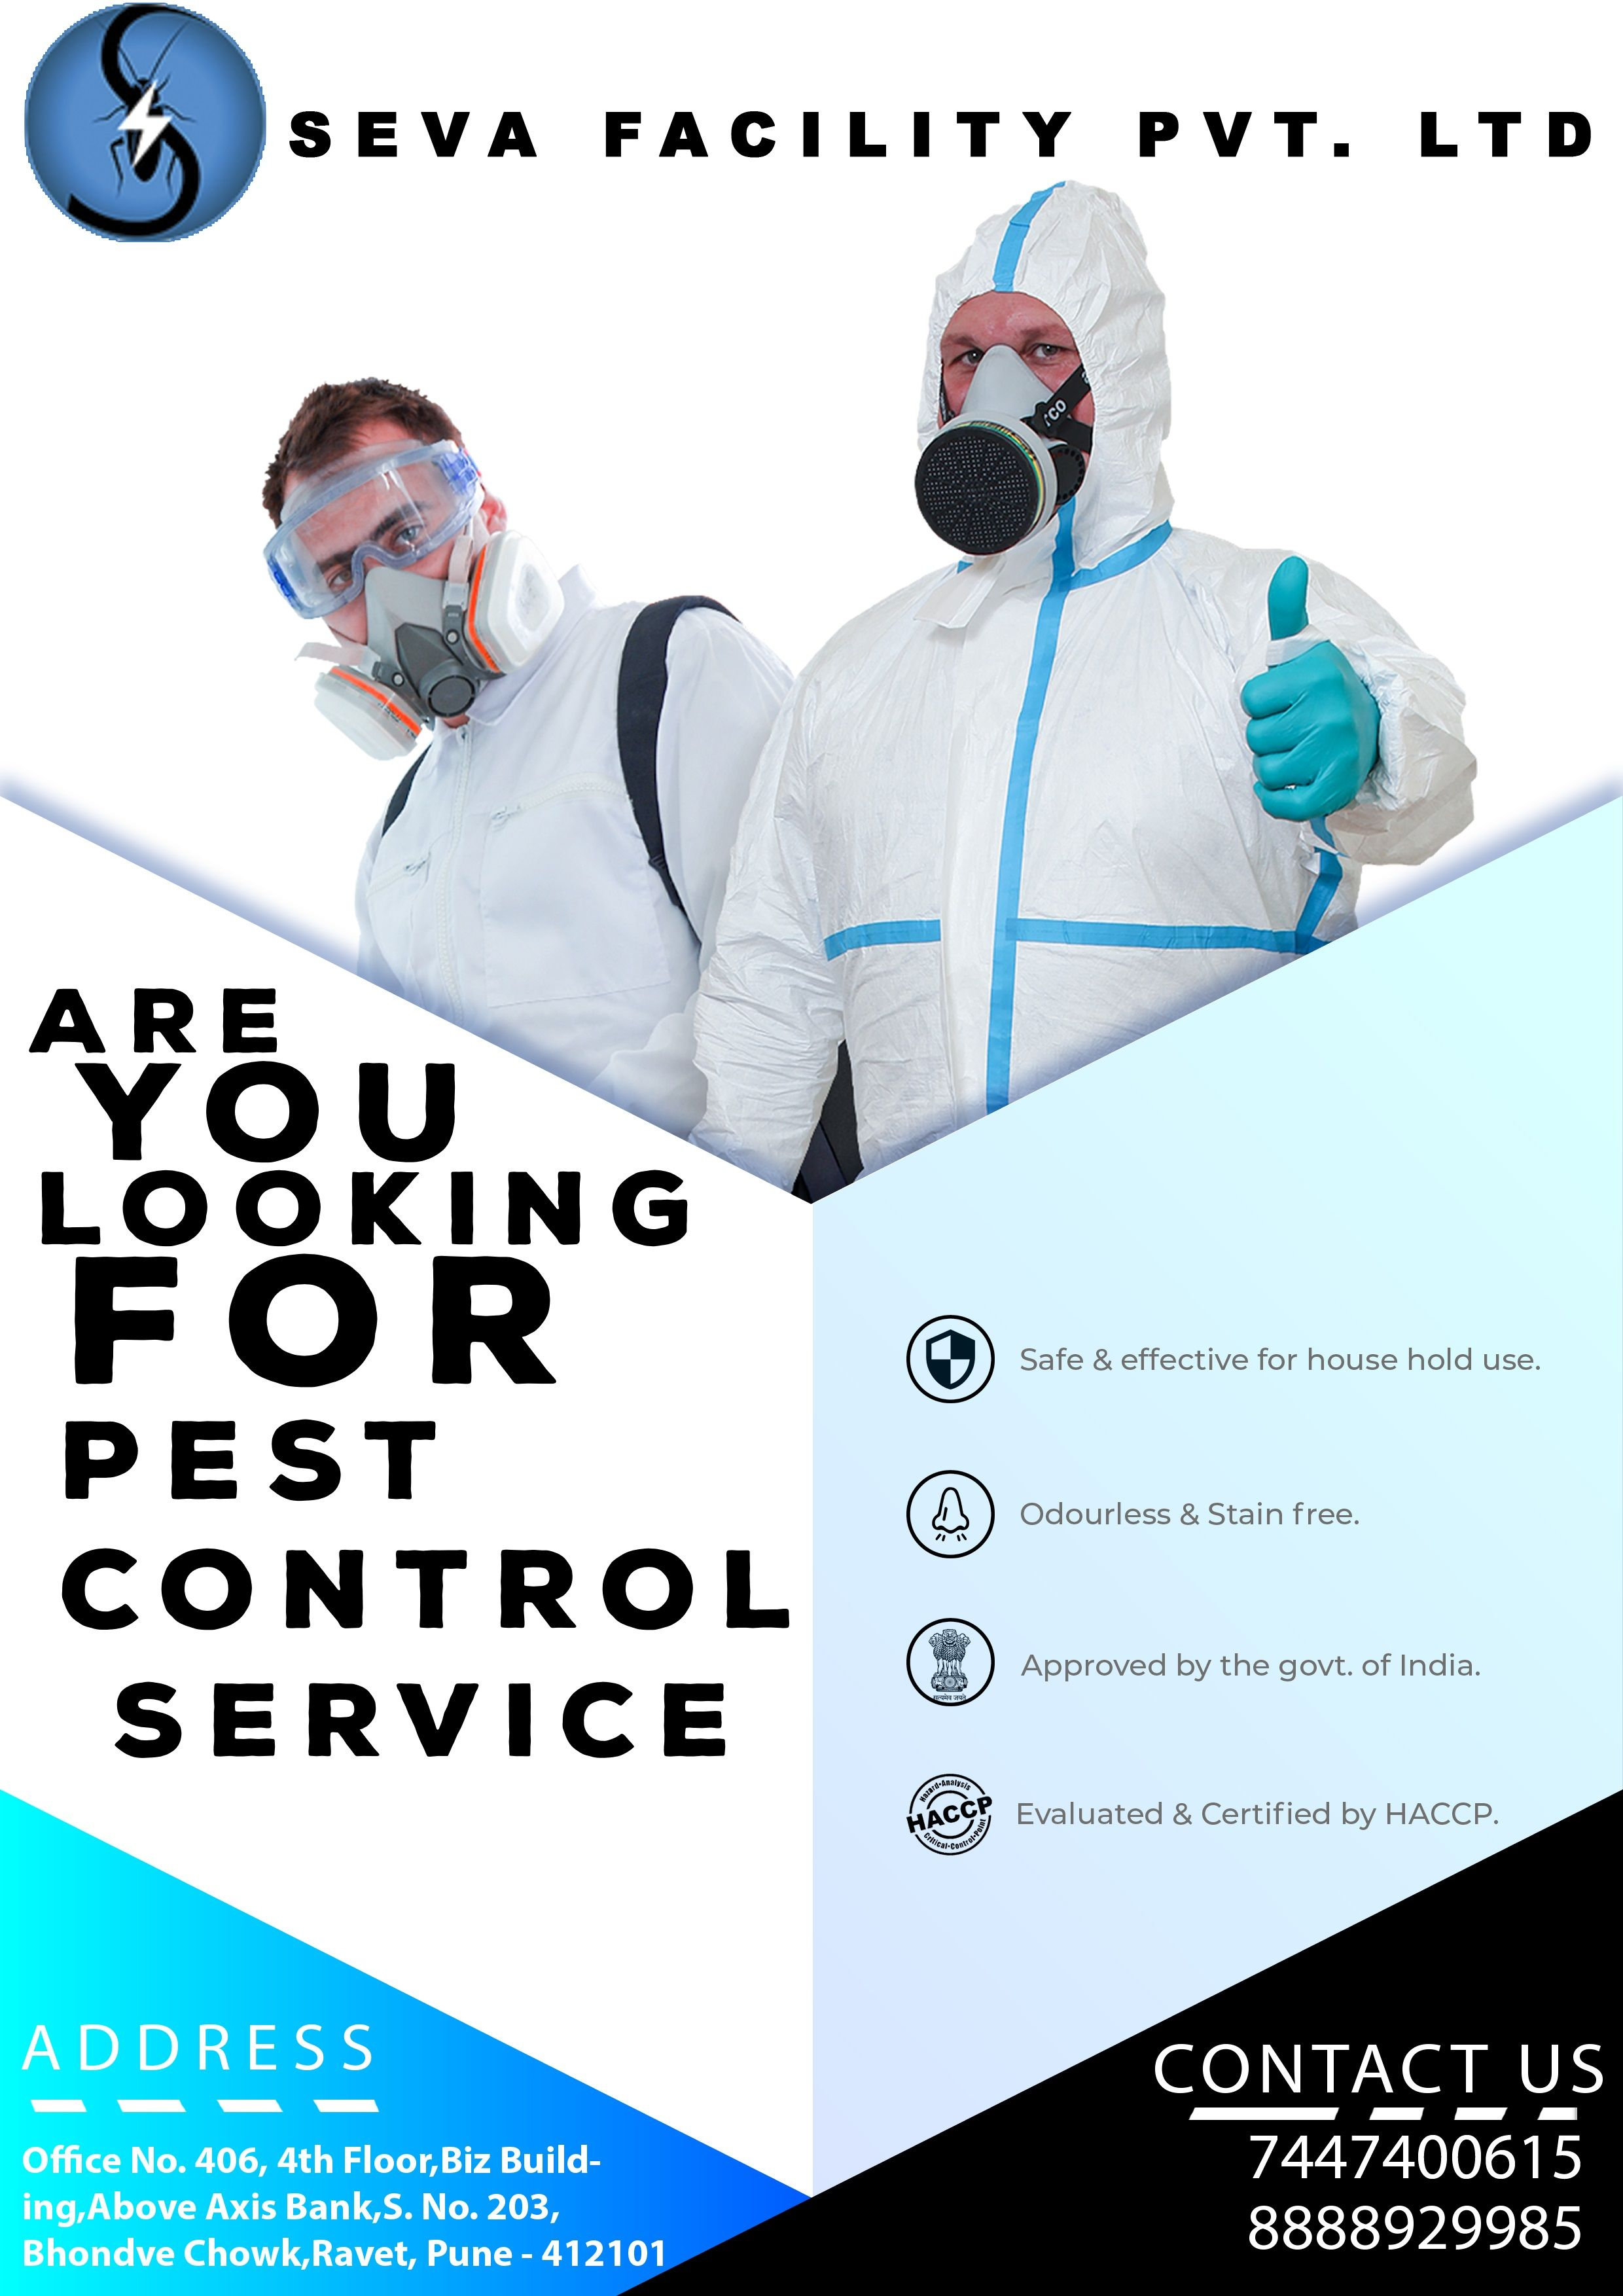 Are you looking for pest control service we seva